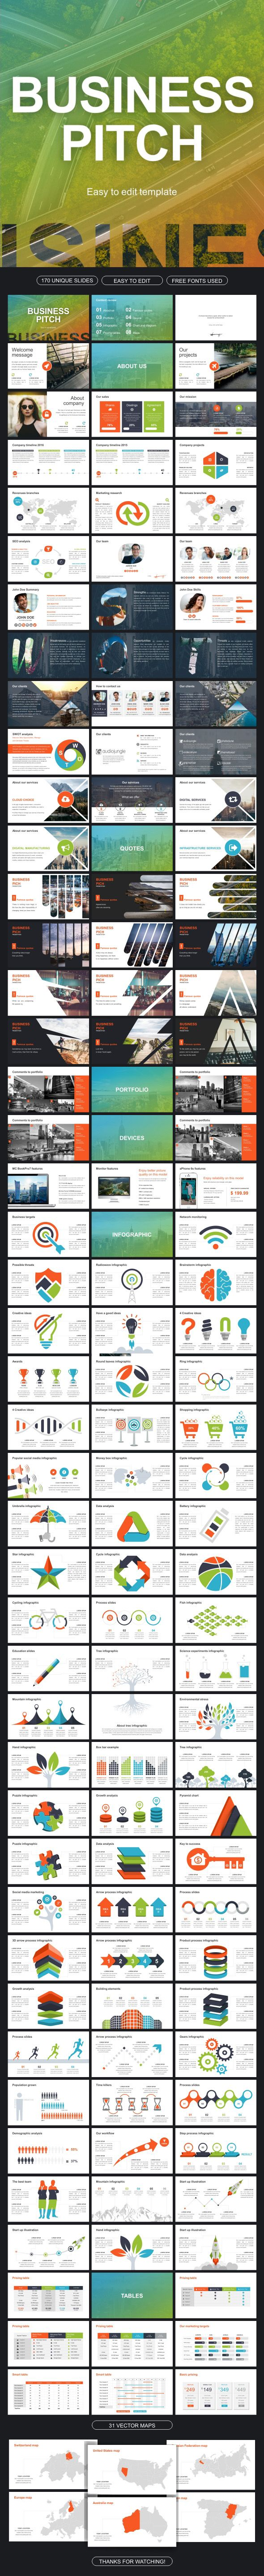 Business Pitch Google Slides | Presentation templates, Template and ...